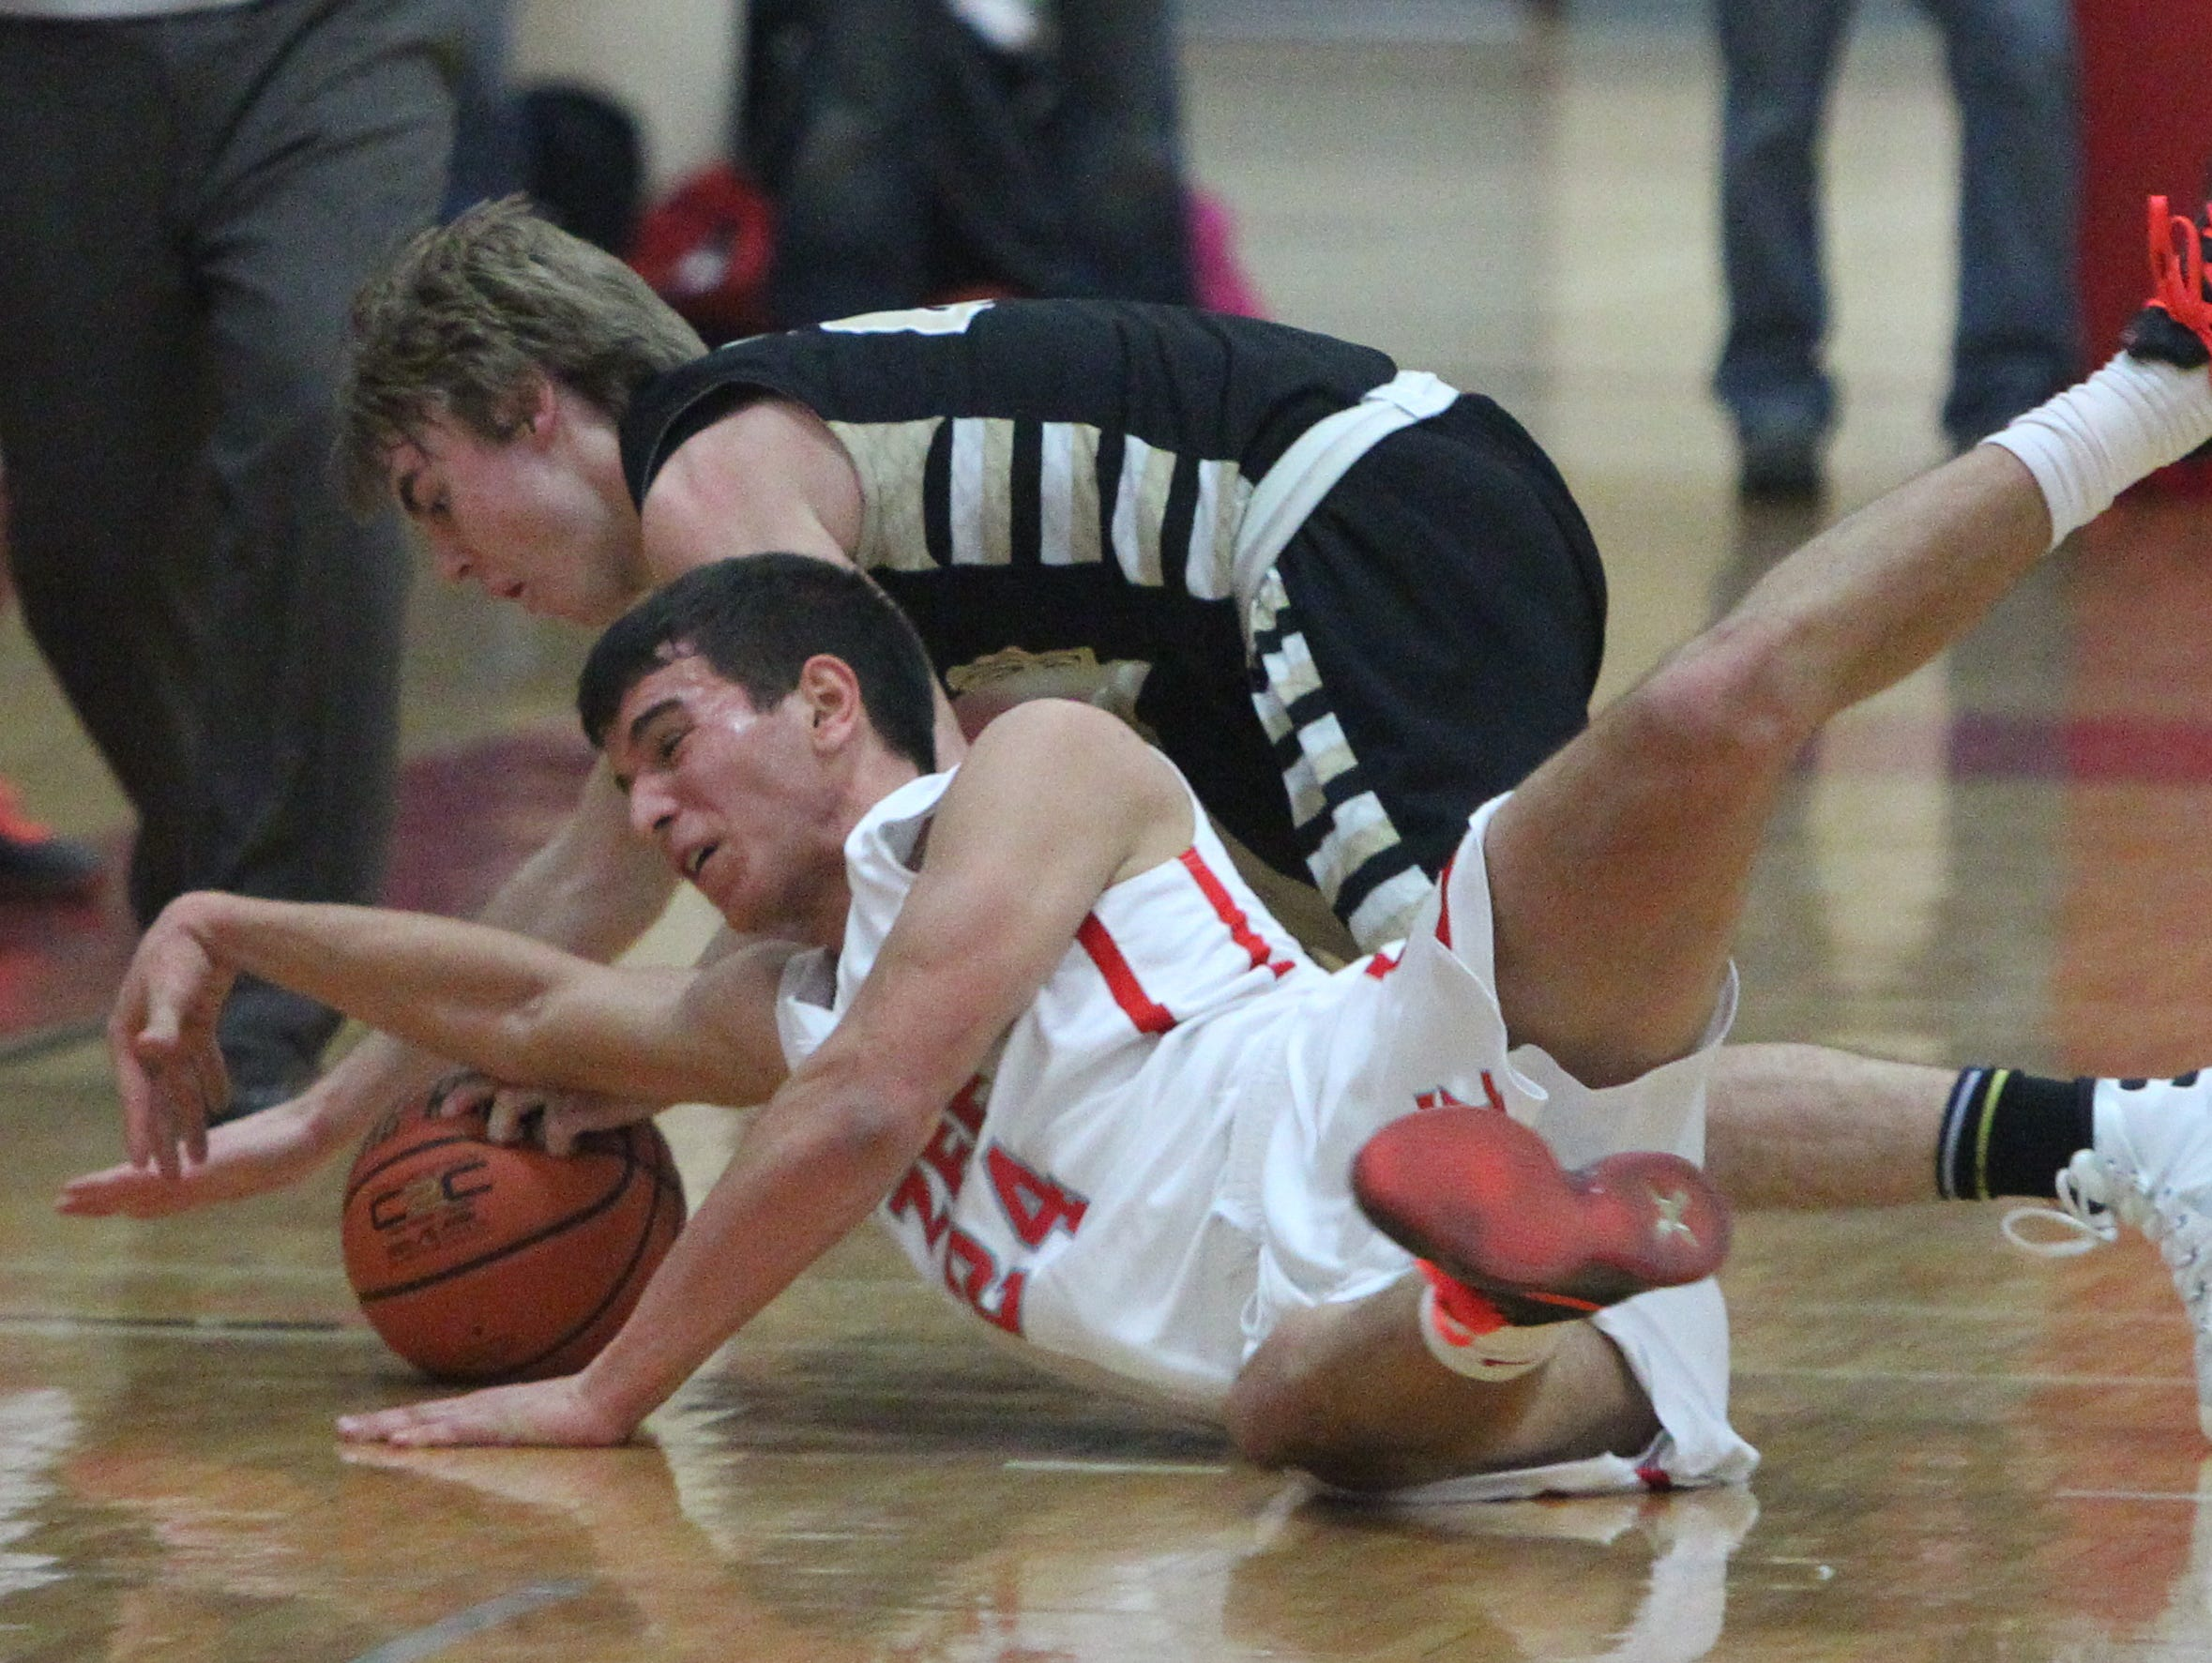 Tappan Zee's Rob McWilliams fights for a loose ball with Nanuet's Terence Rogers during their game at Tappan Zee Jan. 4, 2016. Tappan Zee won 59-46.